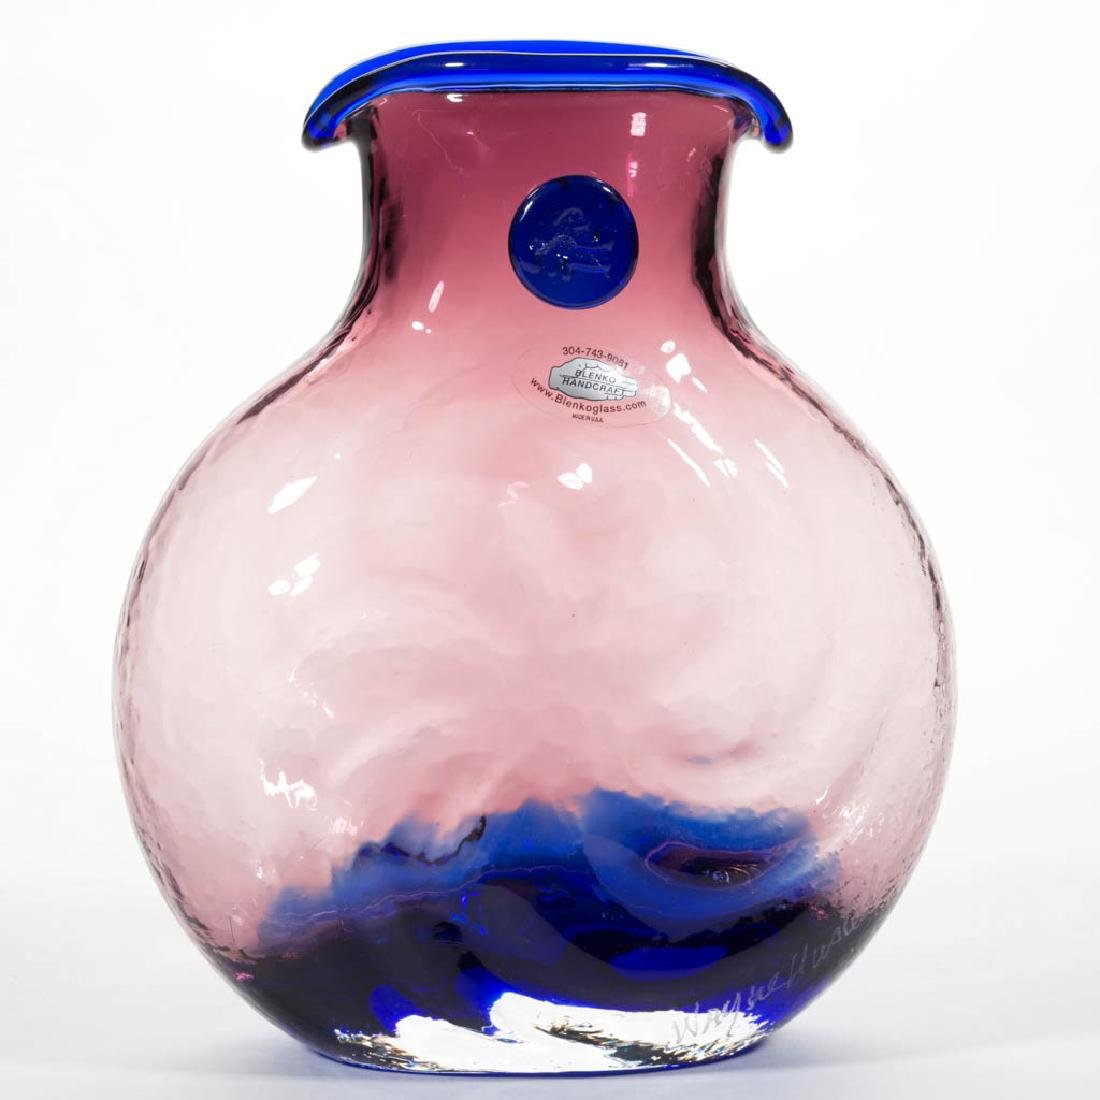 BLENKO GLASS VARIATIONS SERIES - WAYNE HUSTED VASE